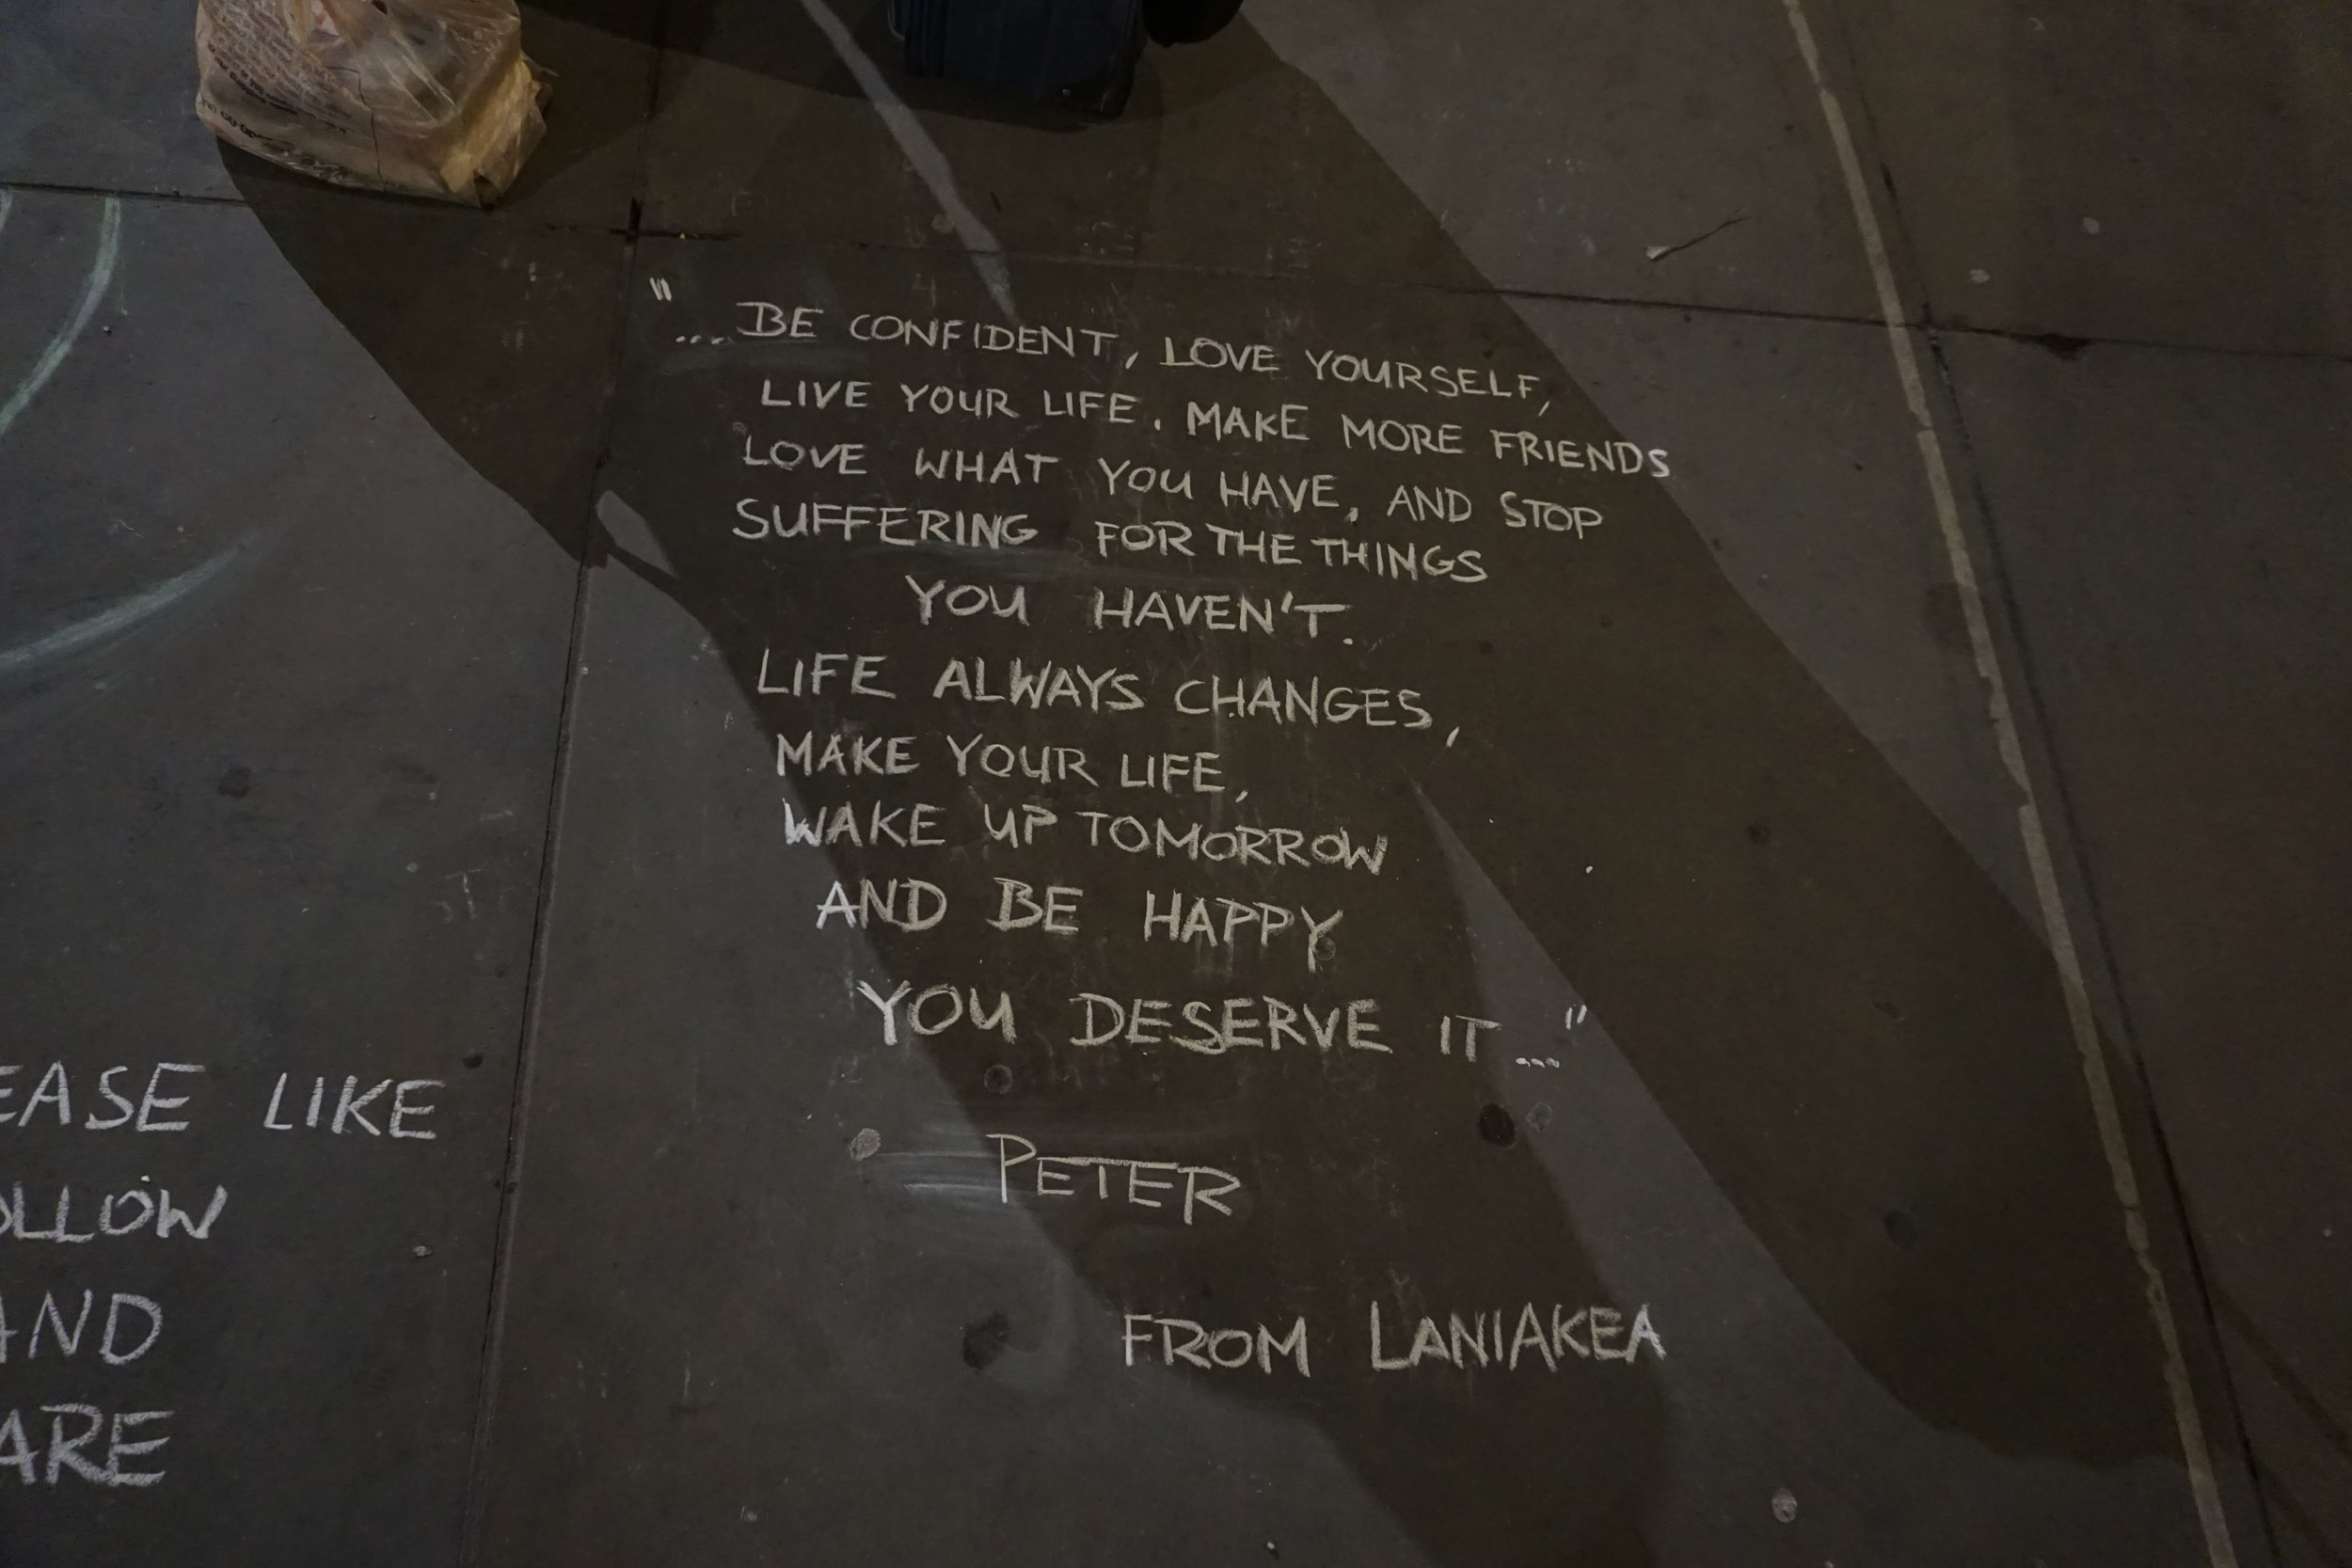 Passed this on a sidewalk in London and loved it